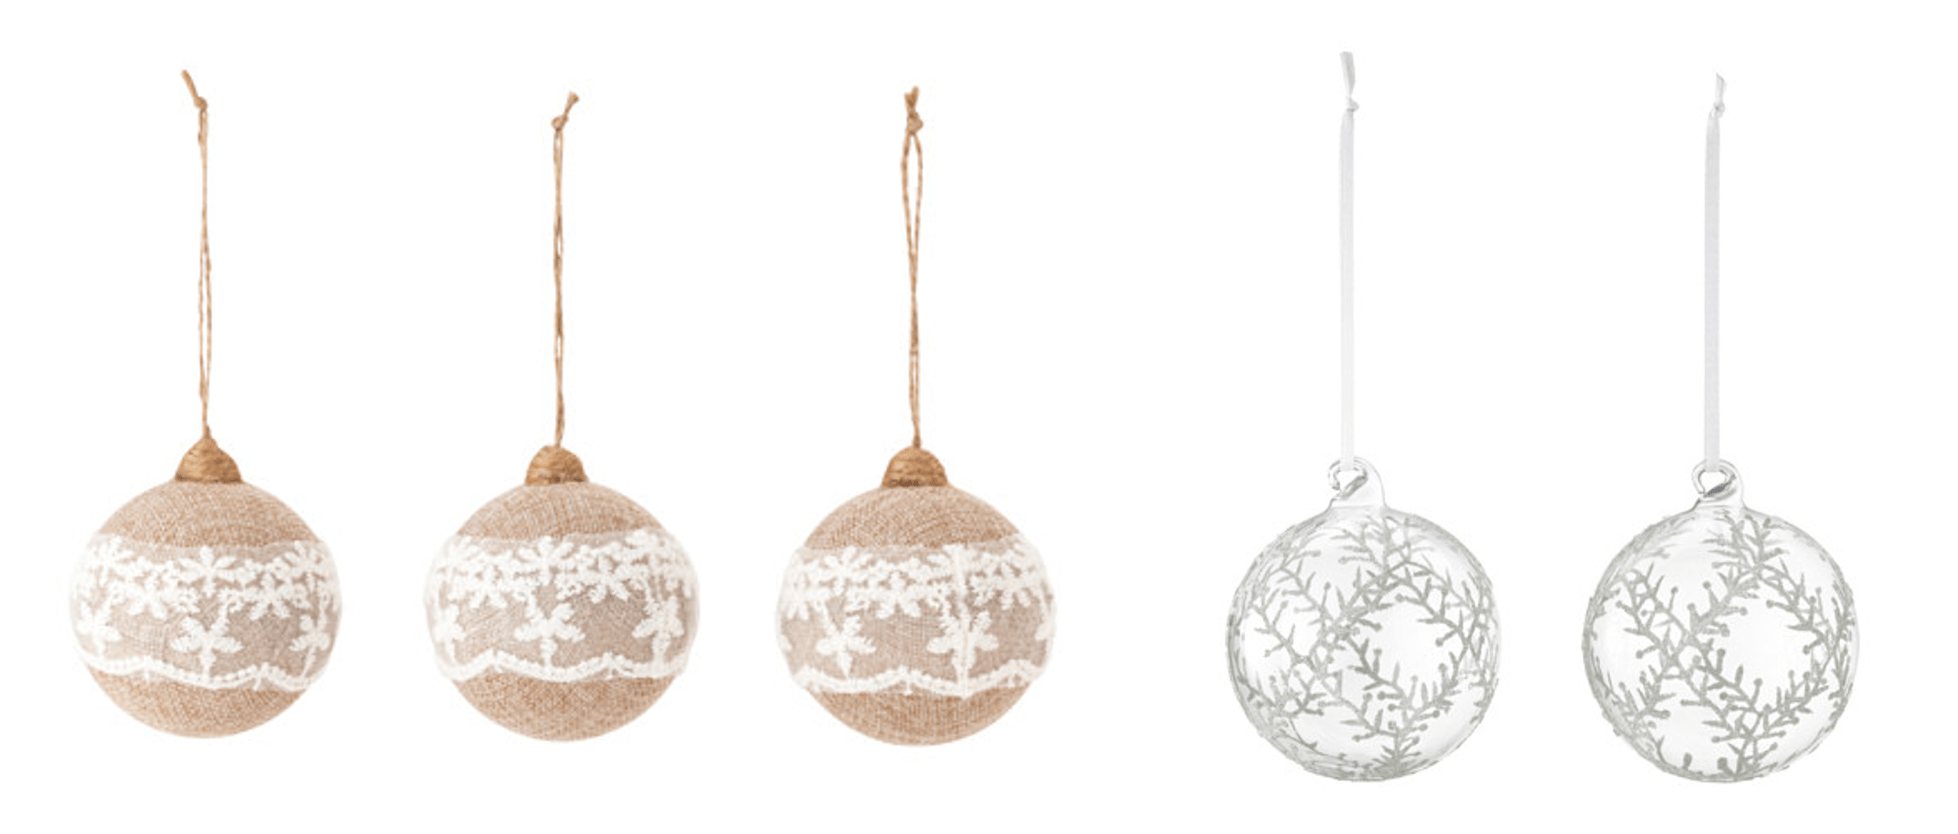 Ikea Christmas Ornaments